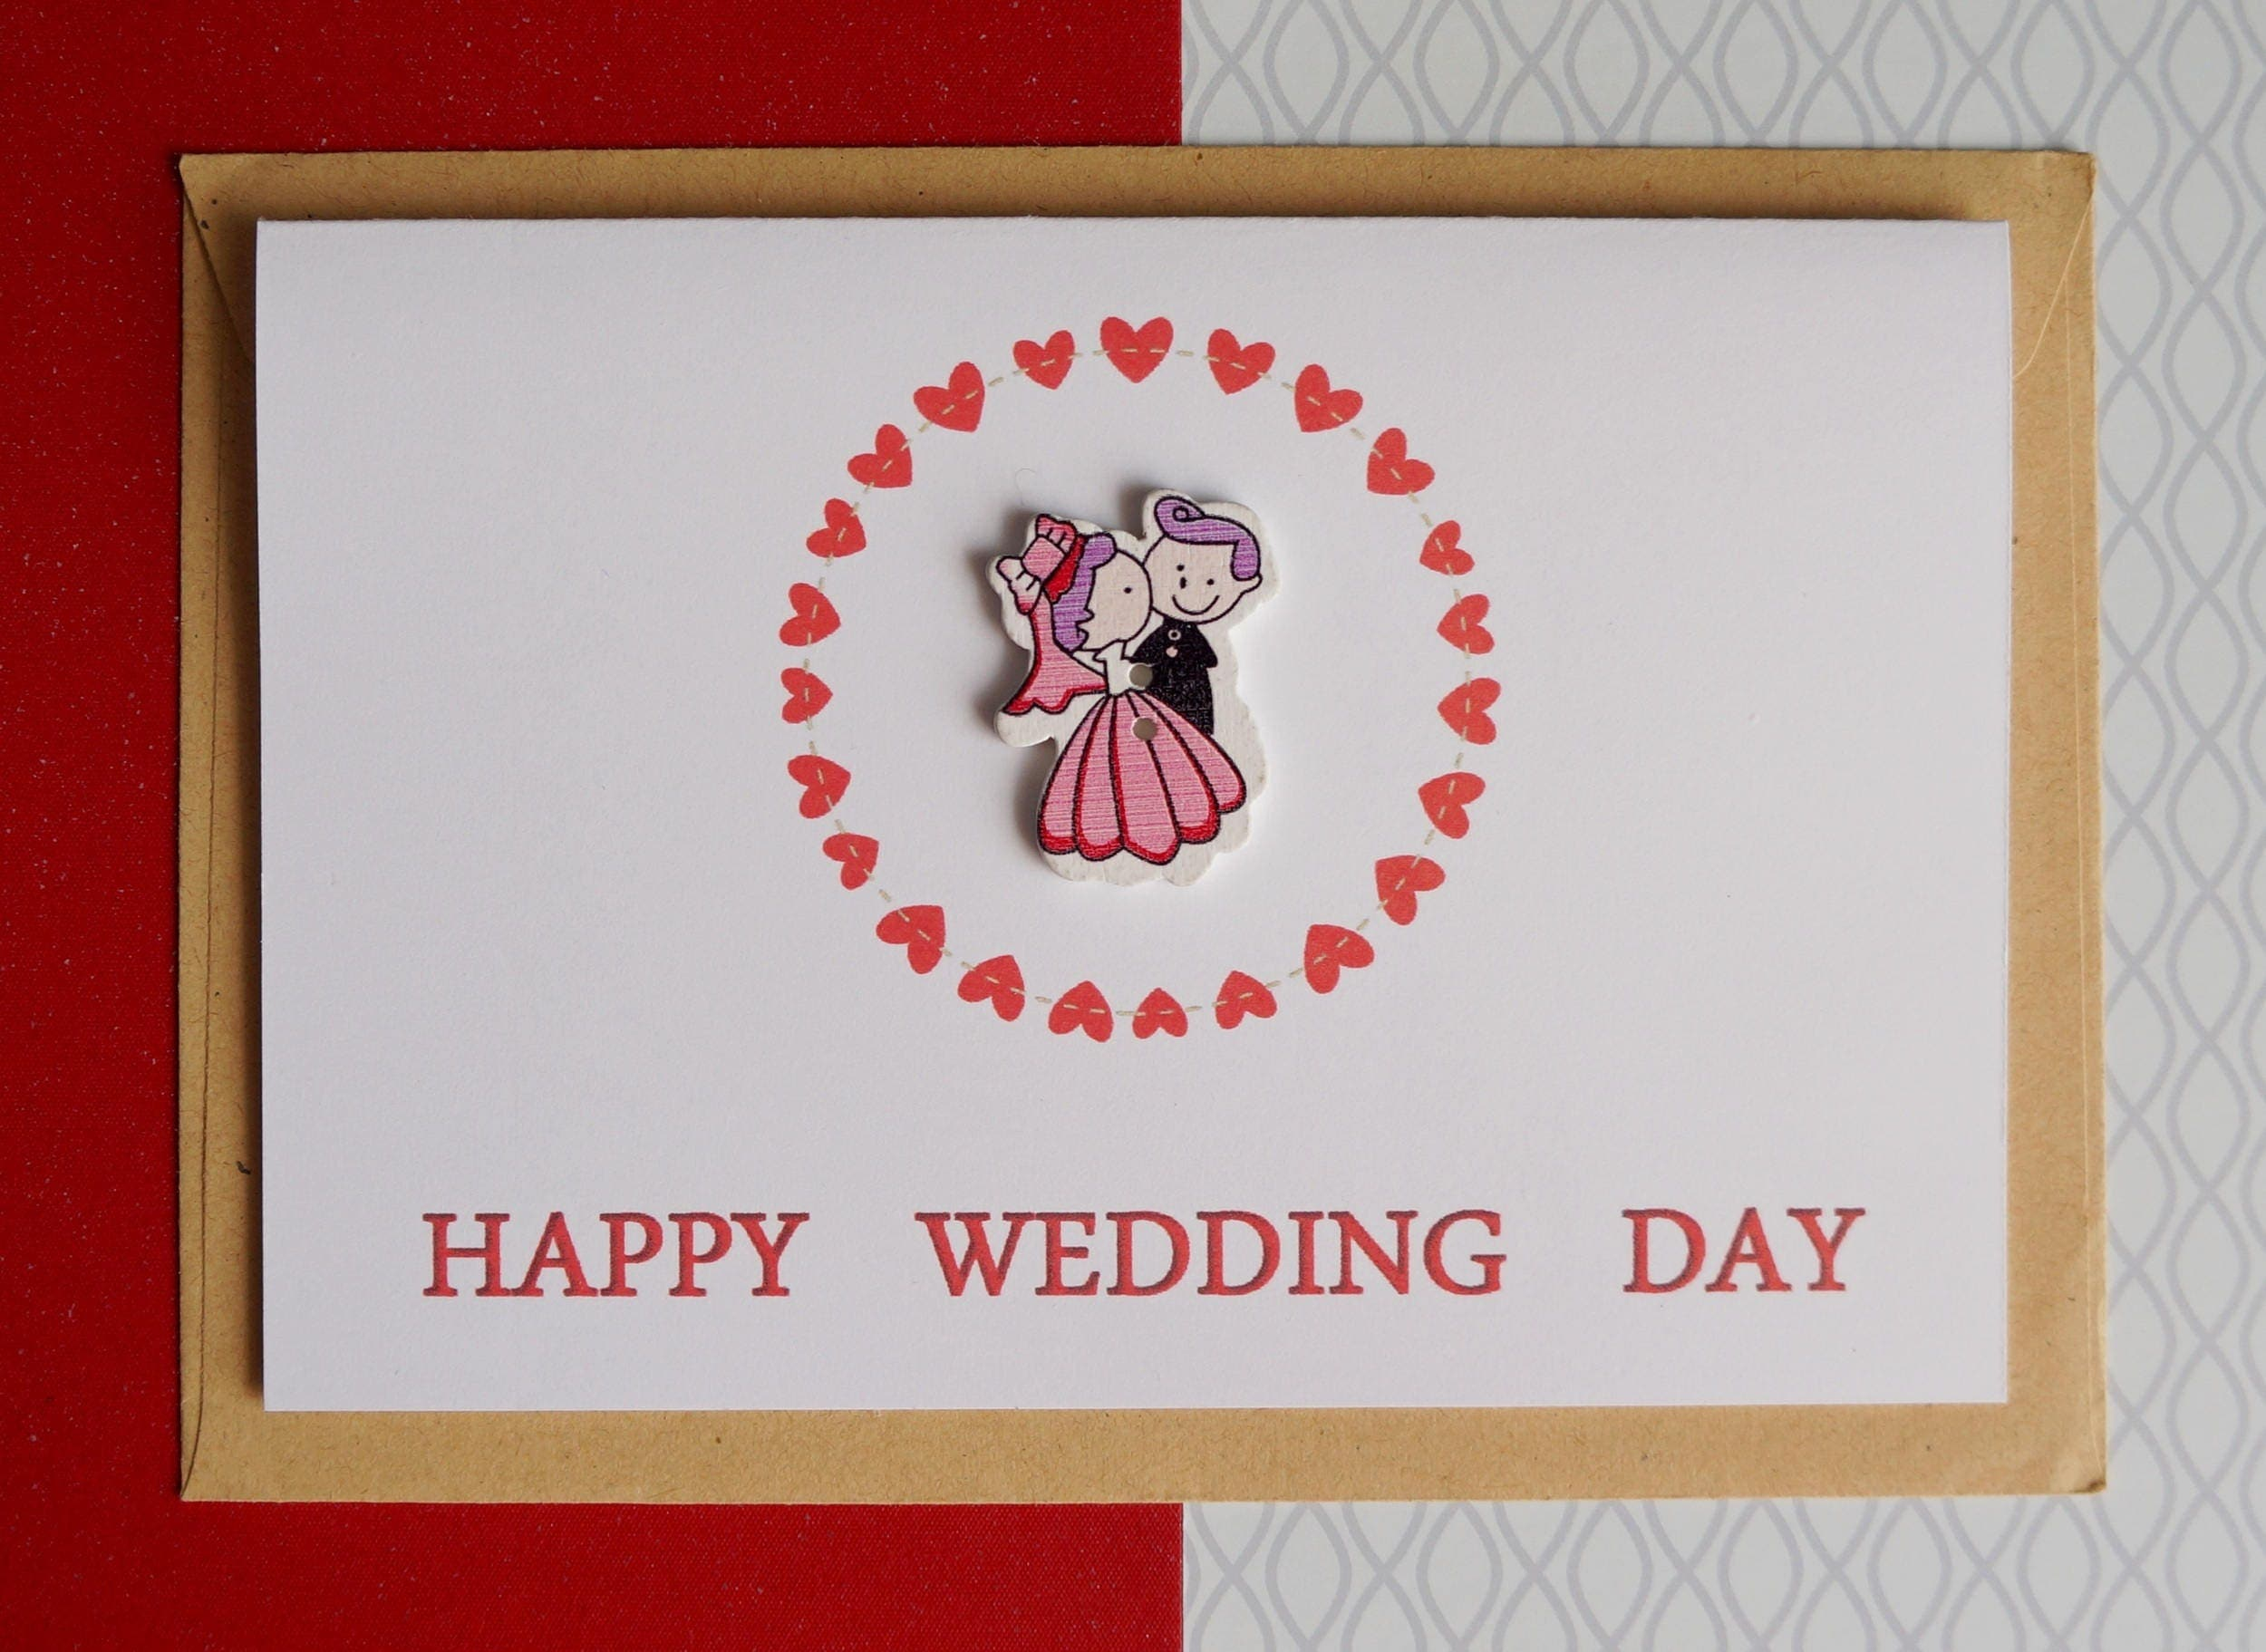 Happy Wedding Day Card For Couple Gift Ideas Mr And Mrs Wishes Best